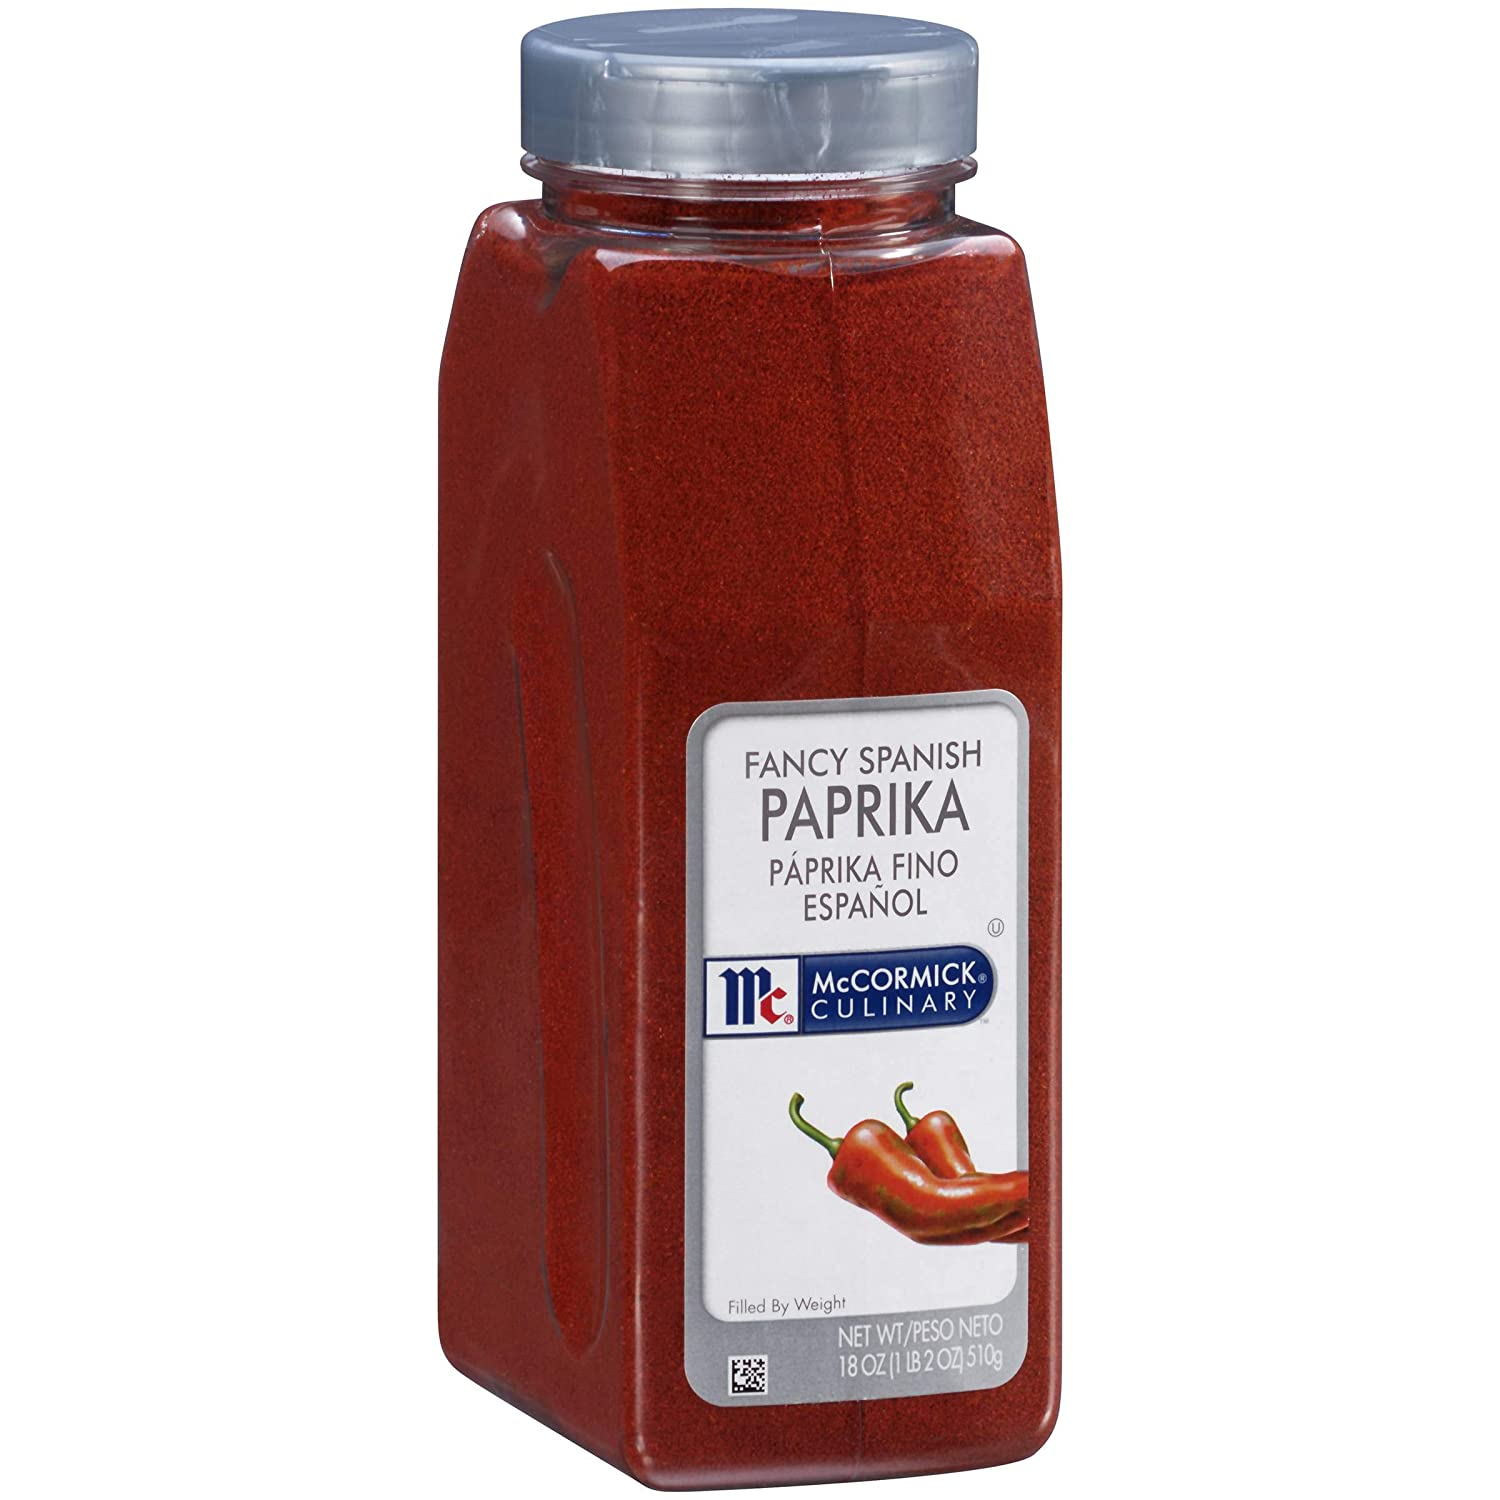 McCormick Fancy Challenge the lowest price of Japan ☆ Spanish Paprika - 18 case per 6 New mail order container oz.